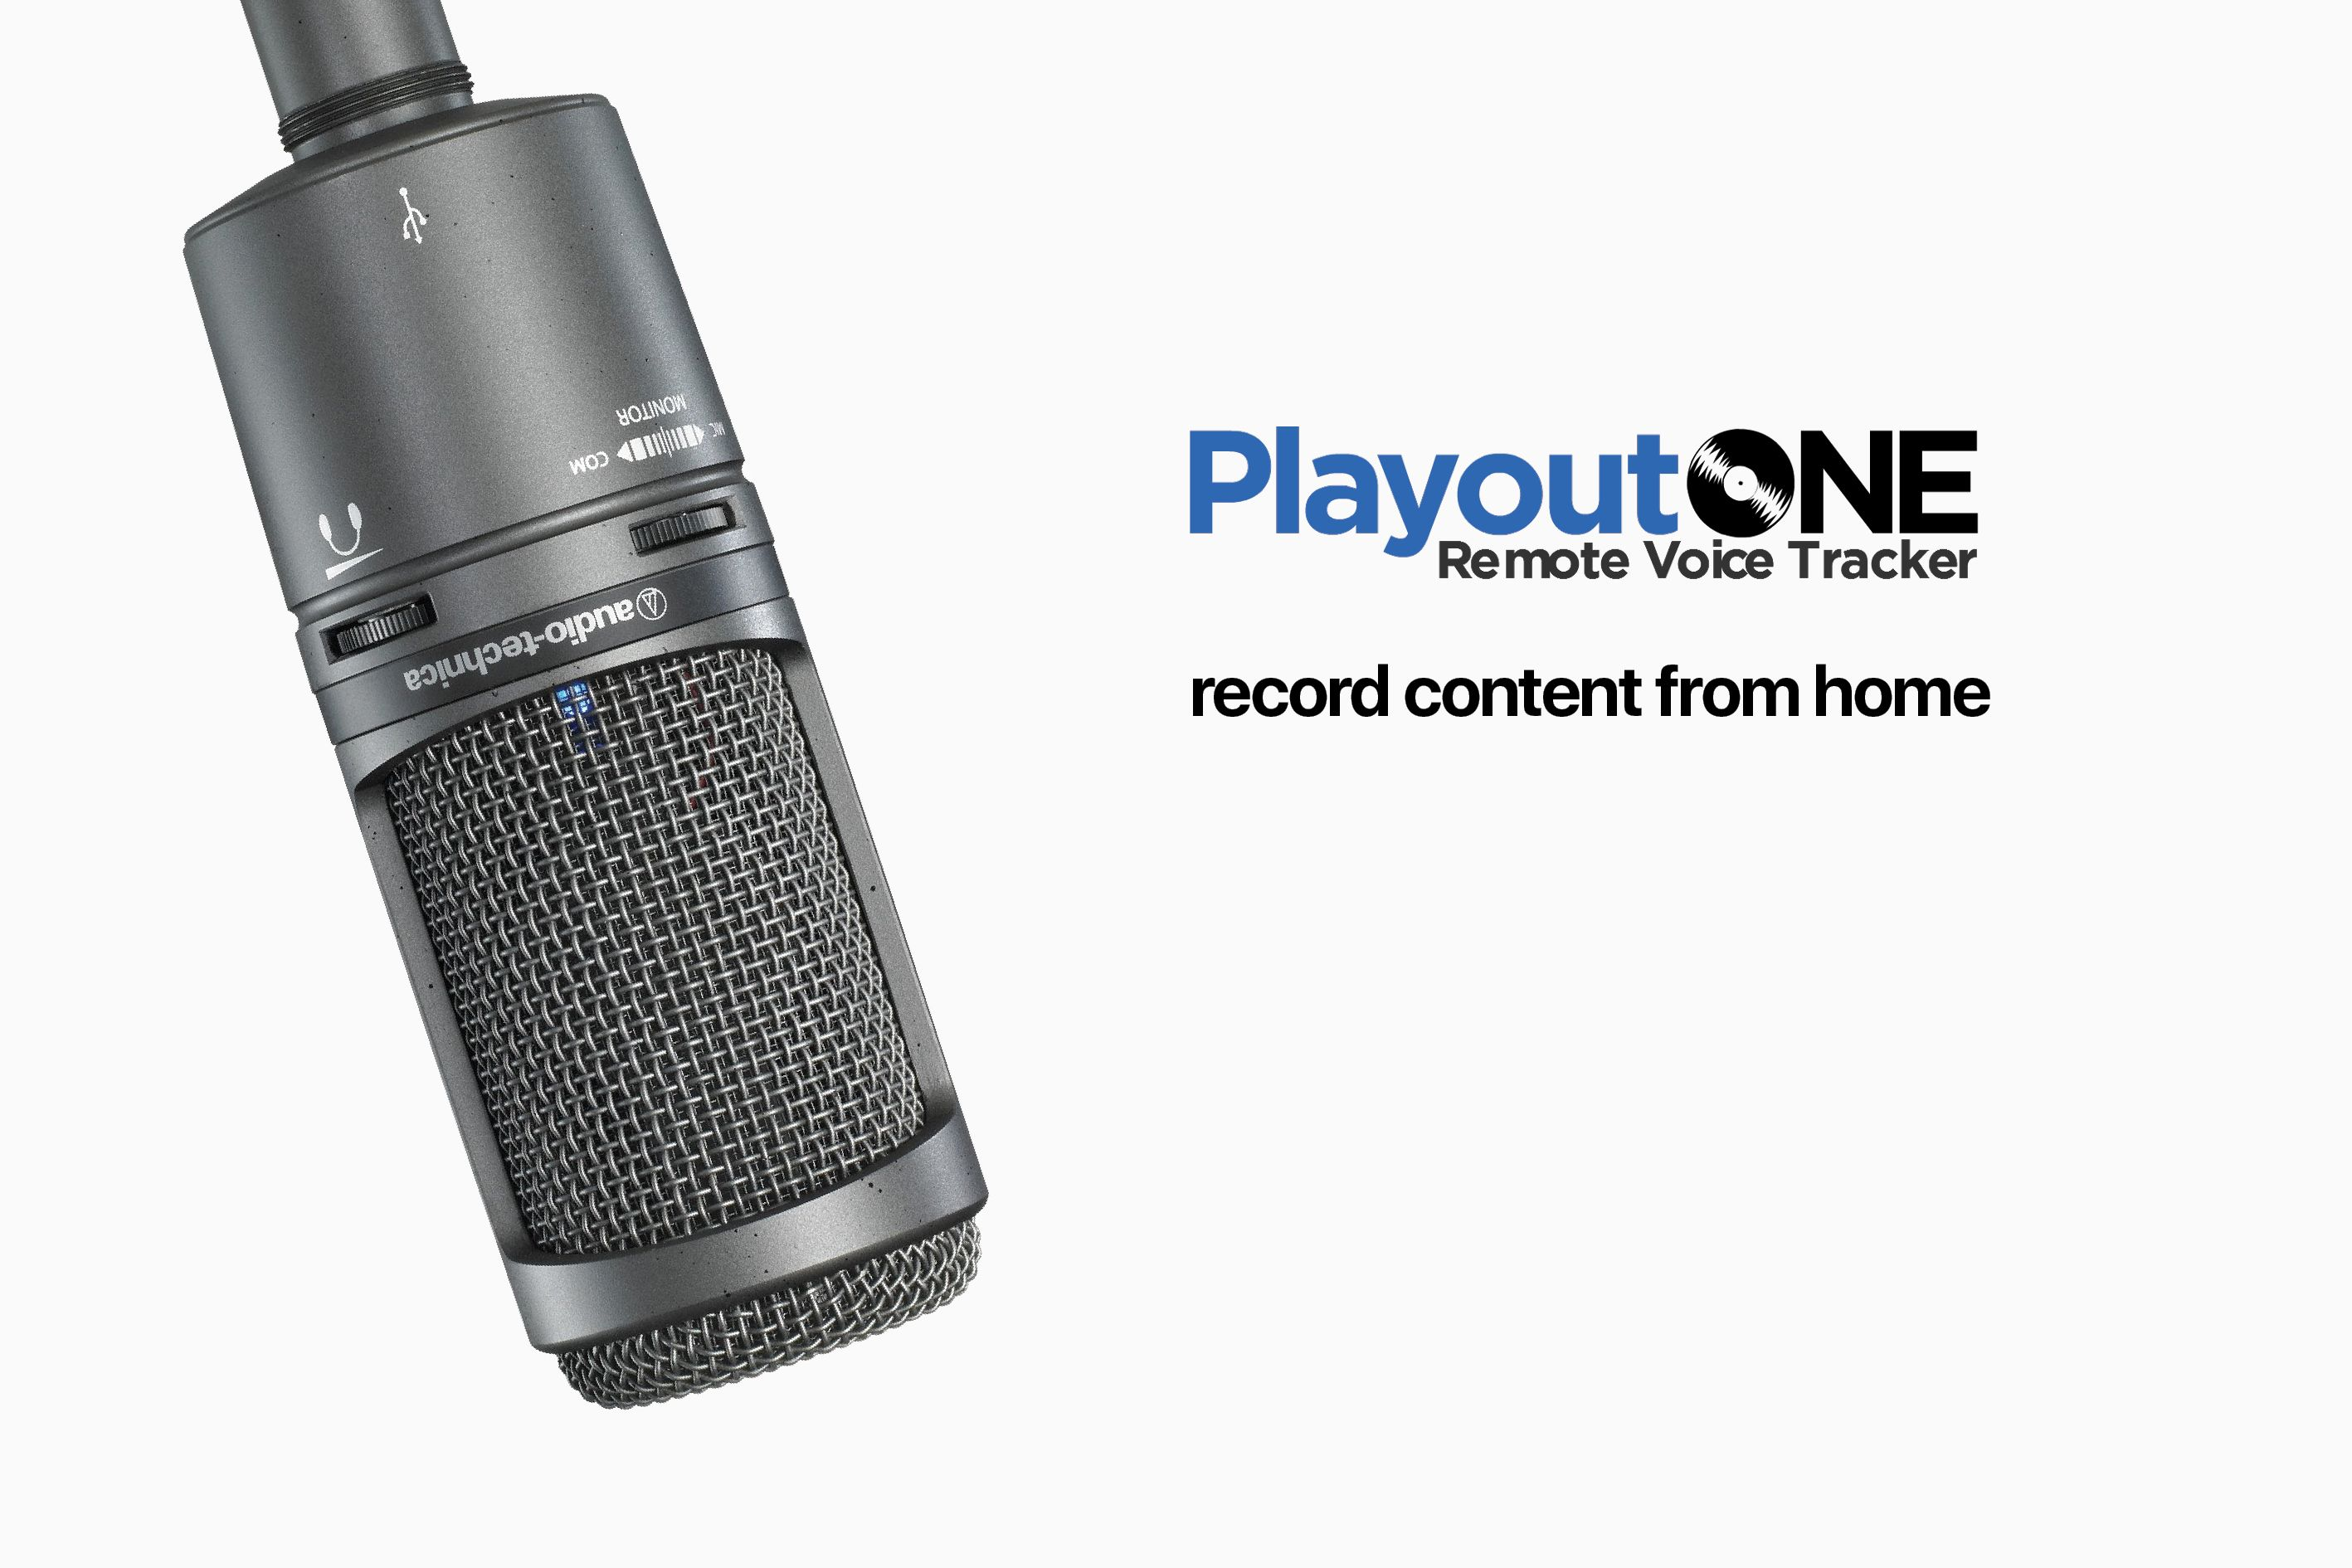 PlayoutONE Remote Voice Tracking